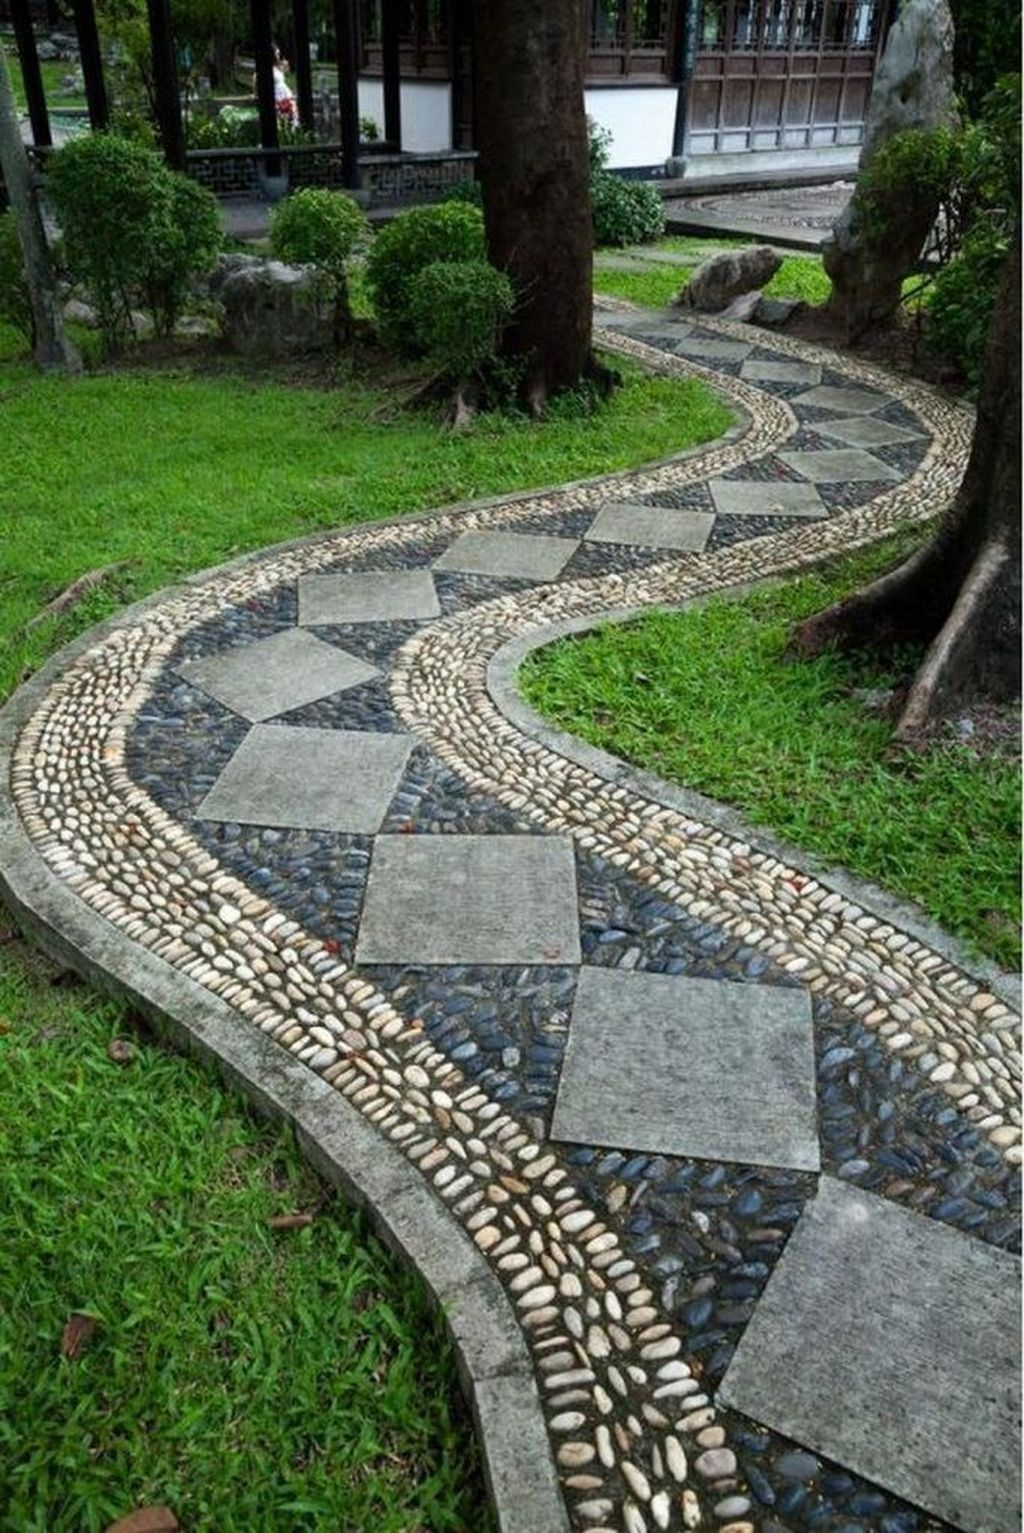 Stunning Stepping Stones Pathway Design Ideas 23